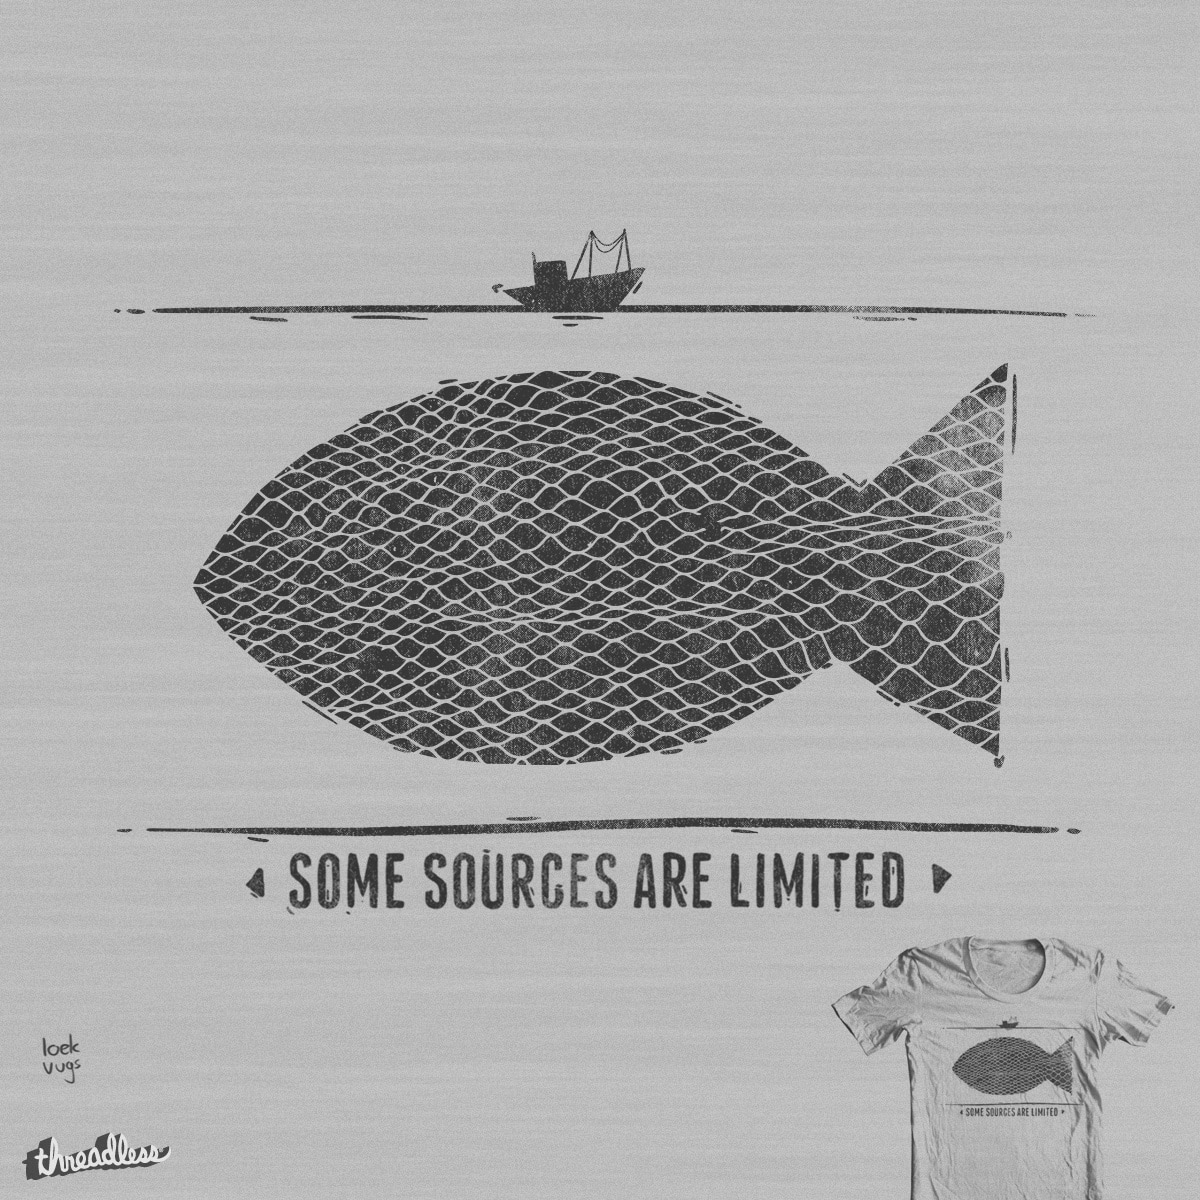 Some Sources Are Limited by Loek Vugs on Threadless